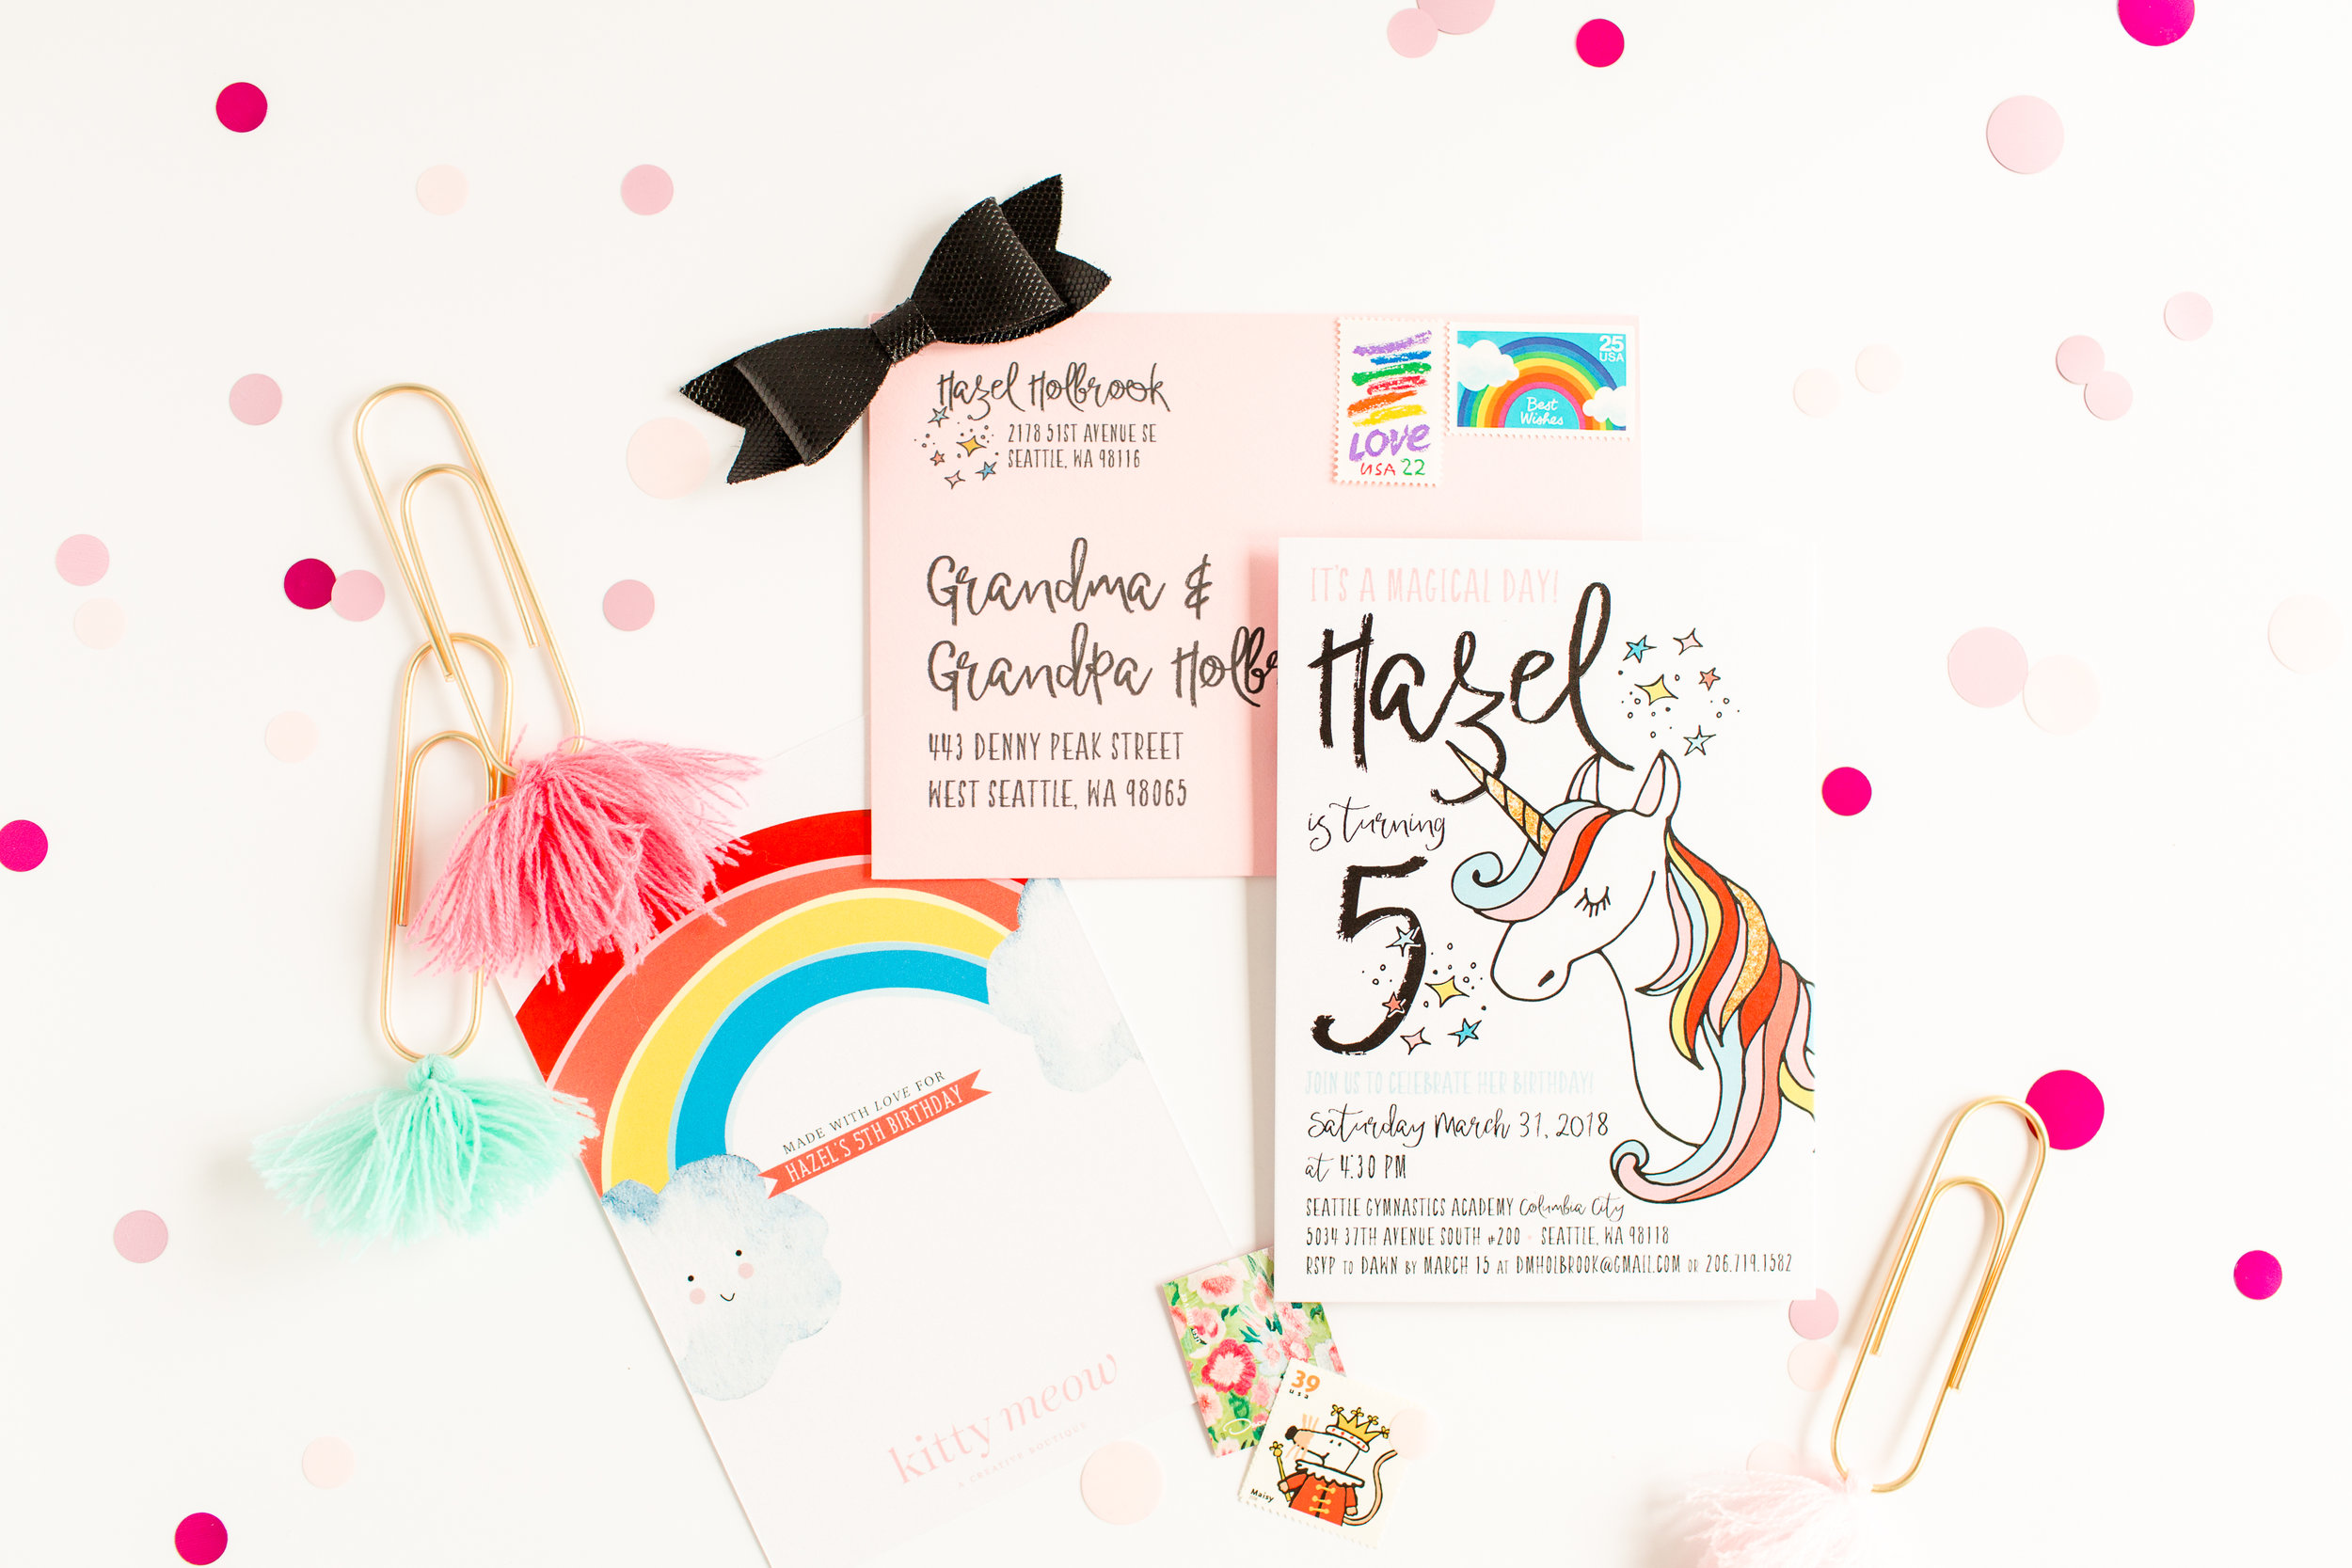 kitty-meow-boutique-stationary-bethanne-arthur-photography-photos-125.jpg